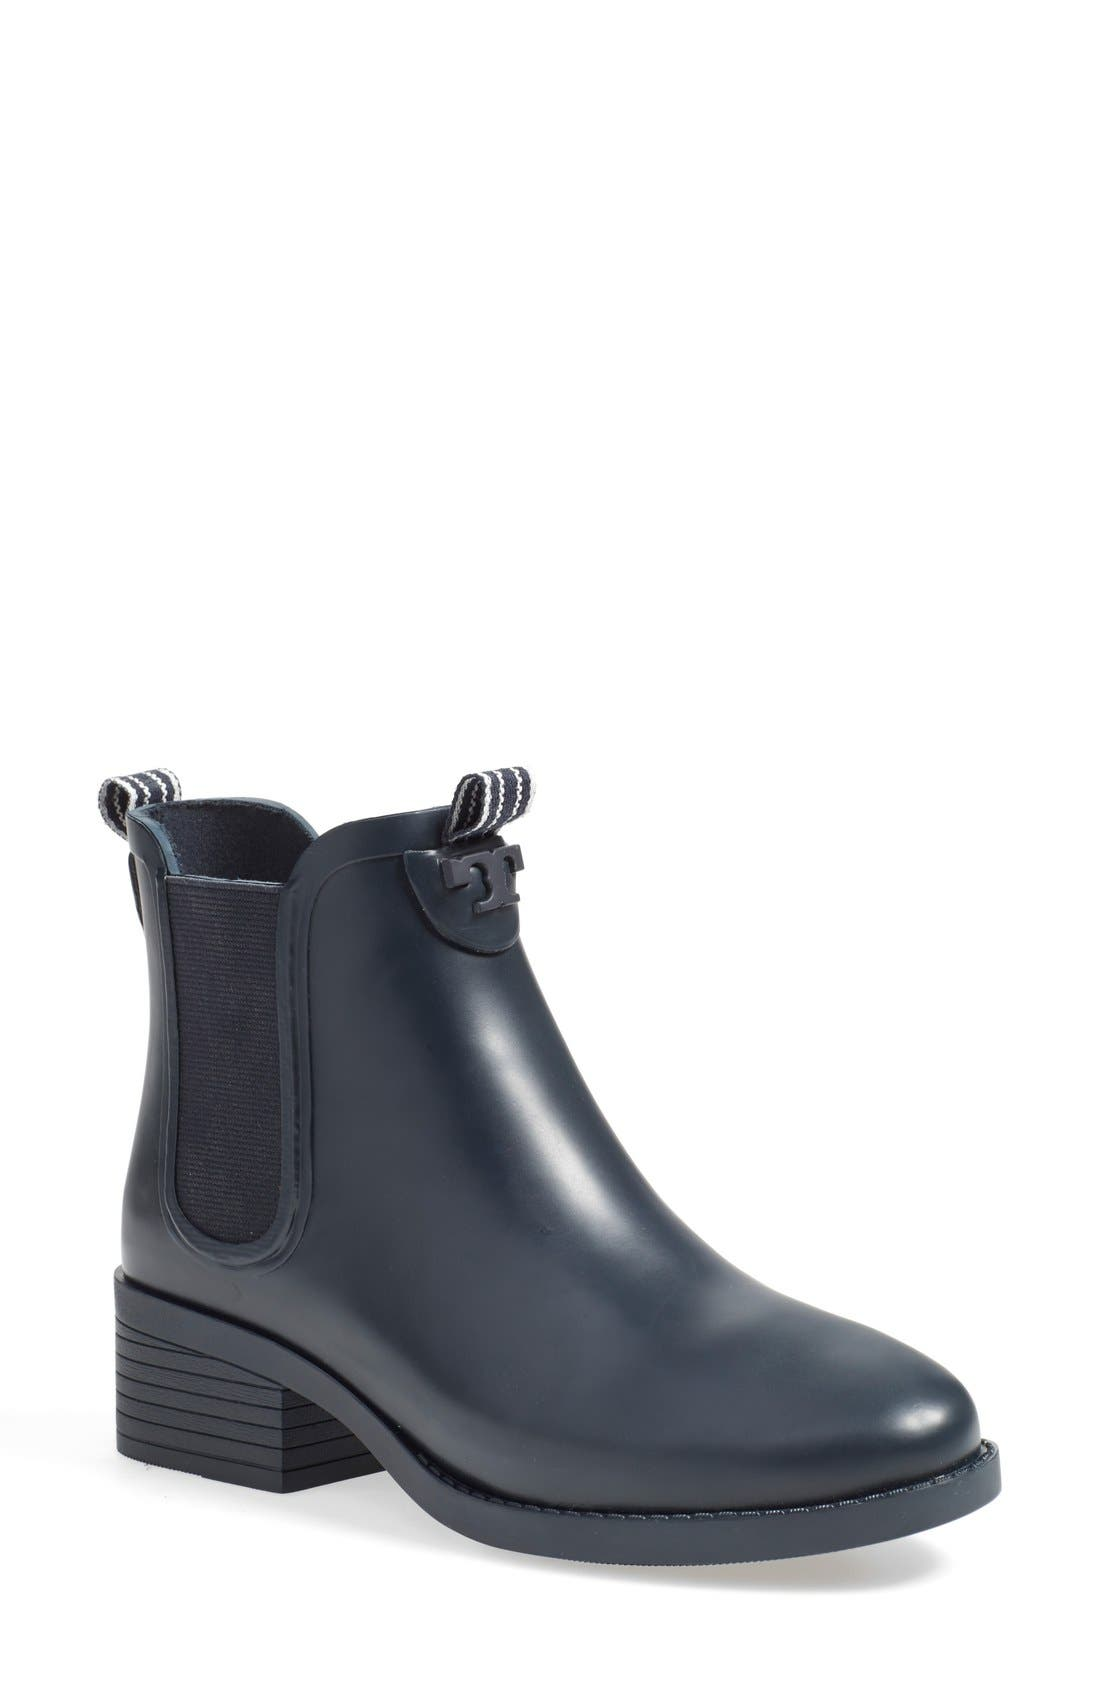 Main Image - Tory Burch Chelsea Rain Boot (Women)